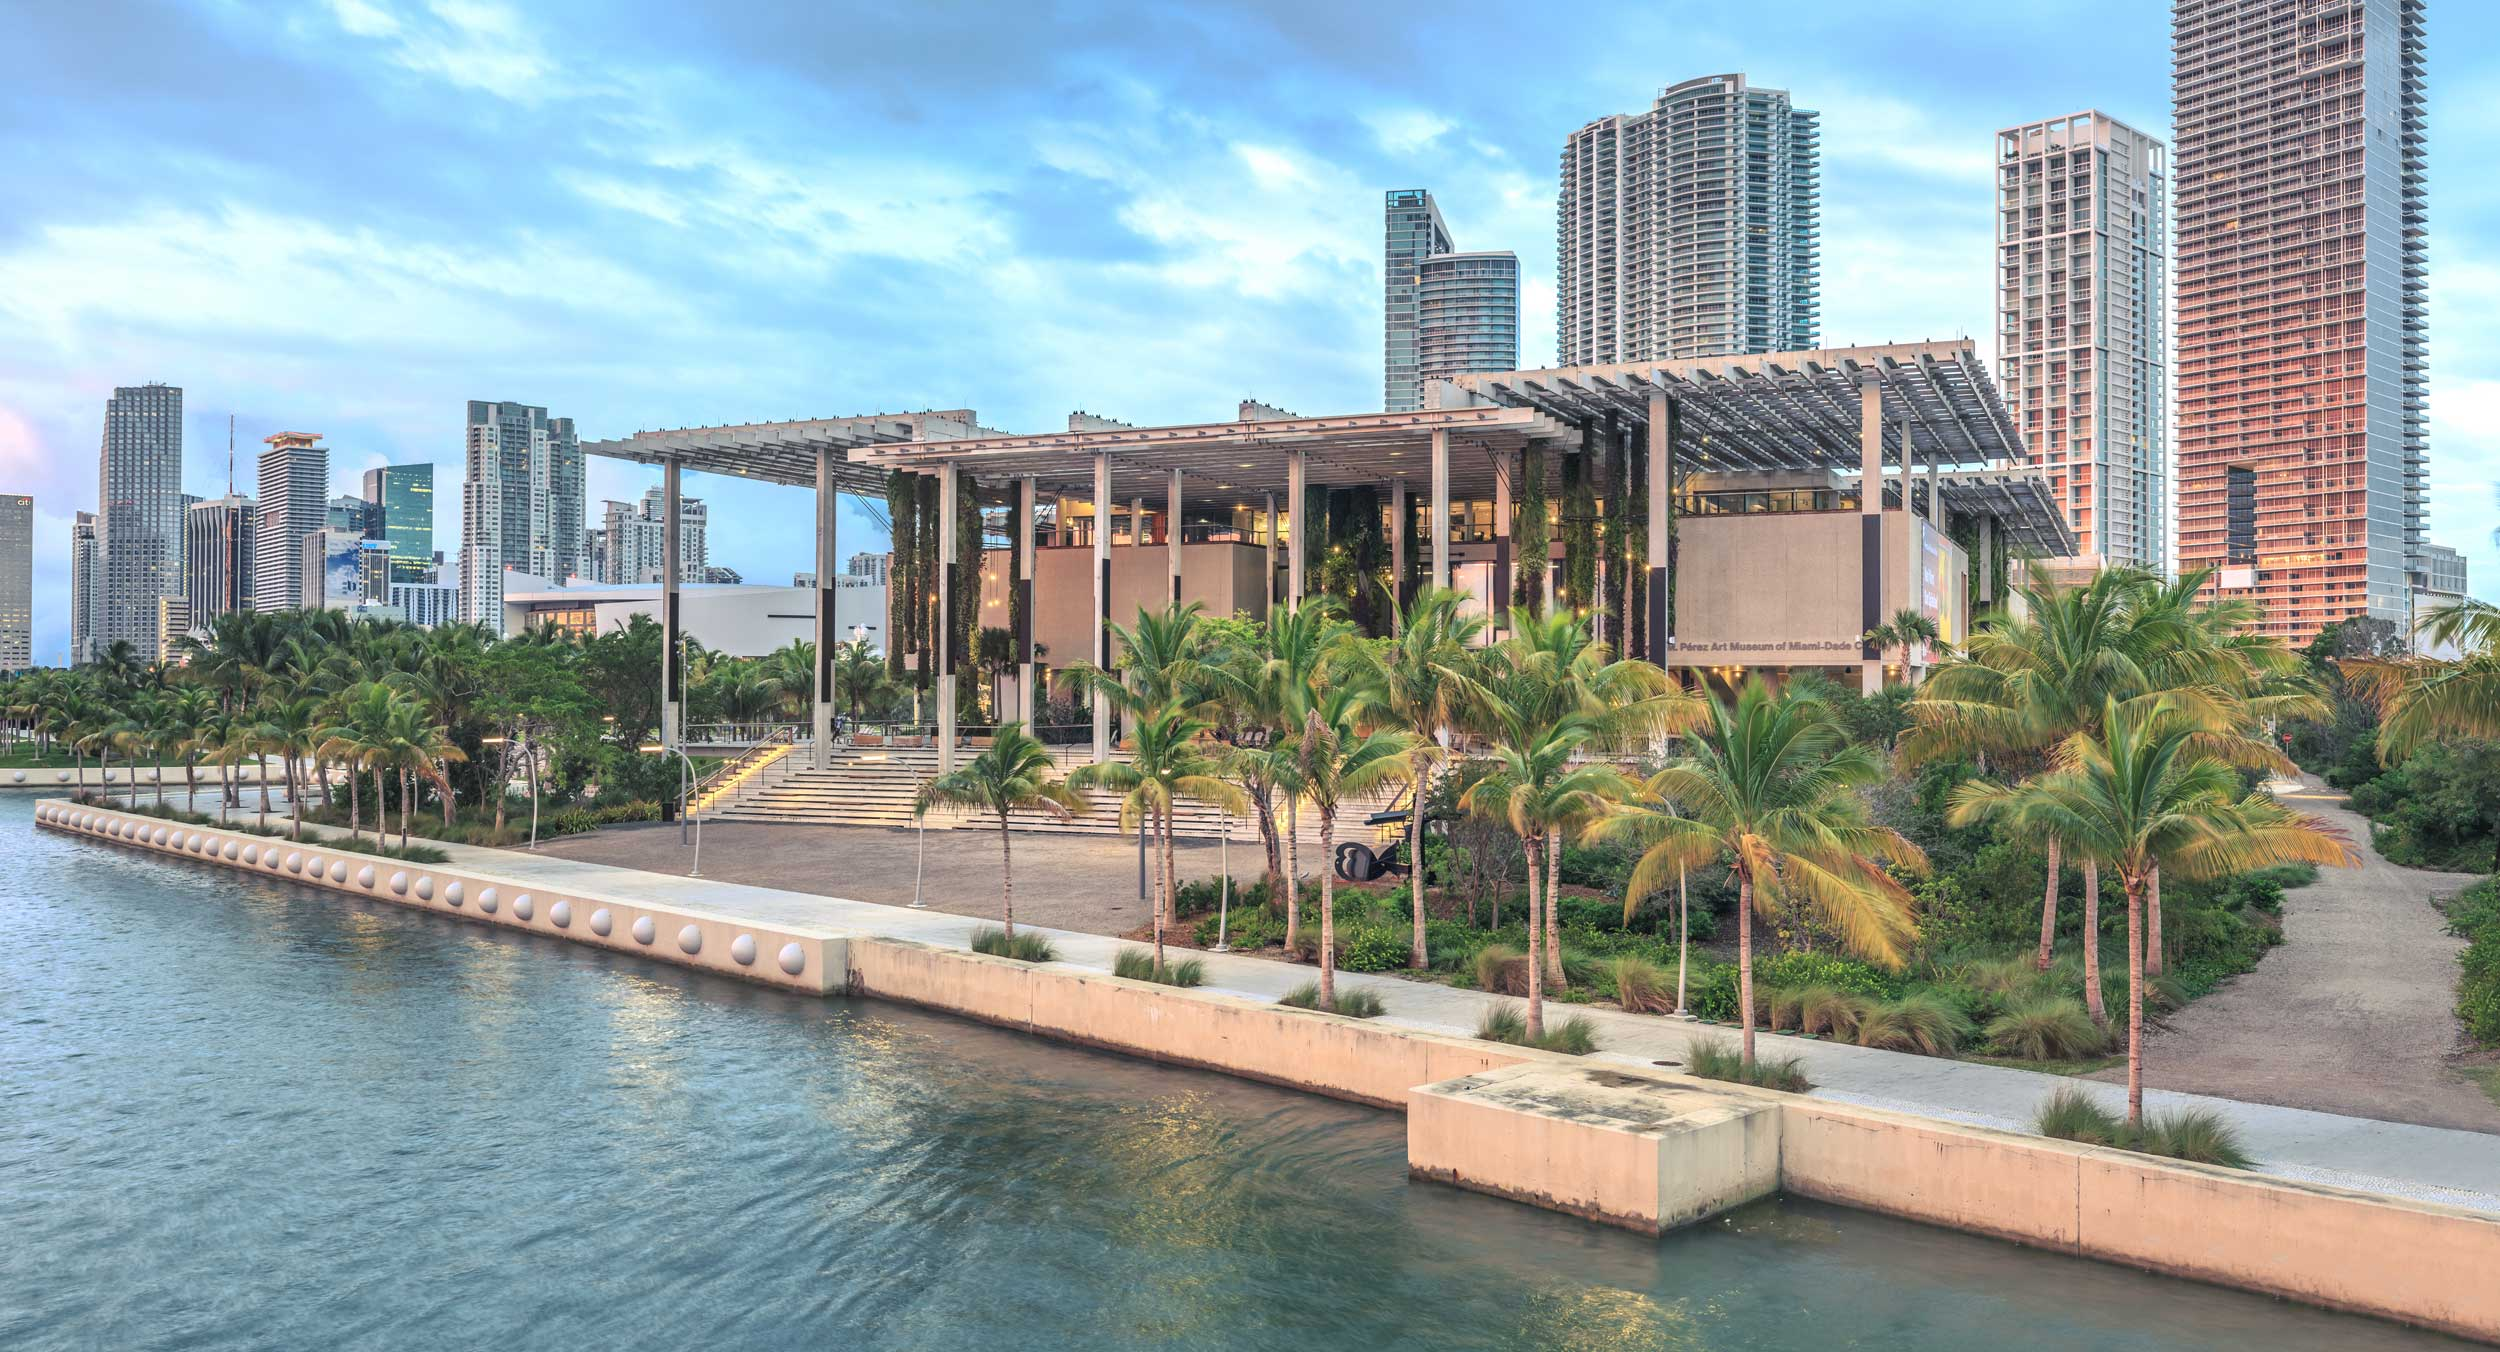 Building with thin-pillared portico by tha water with palm trees lining the water, Miami